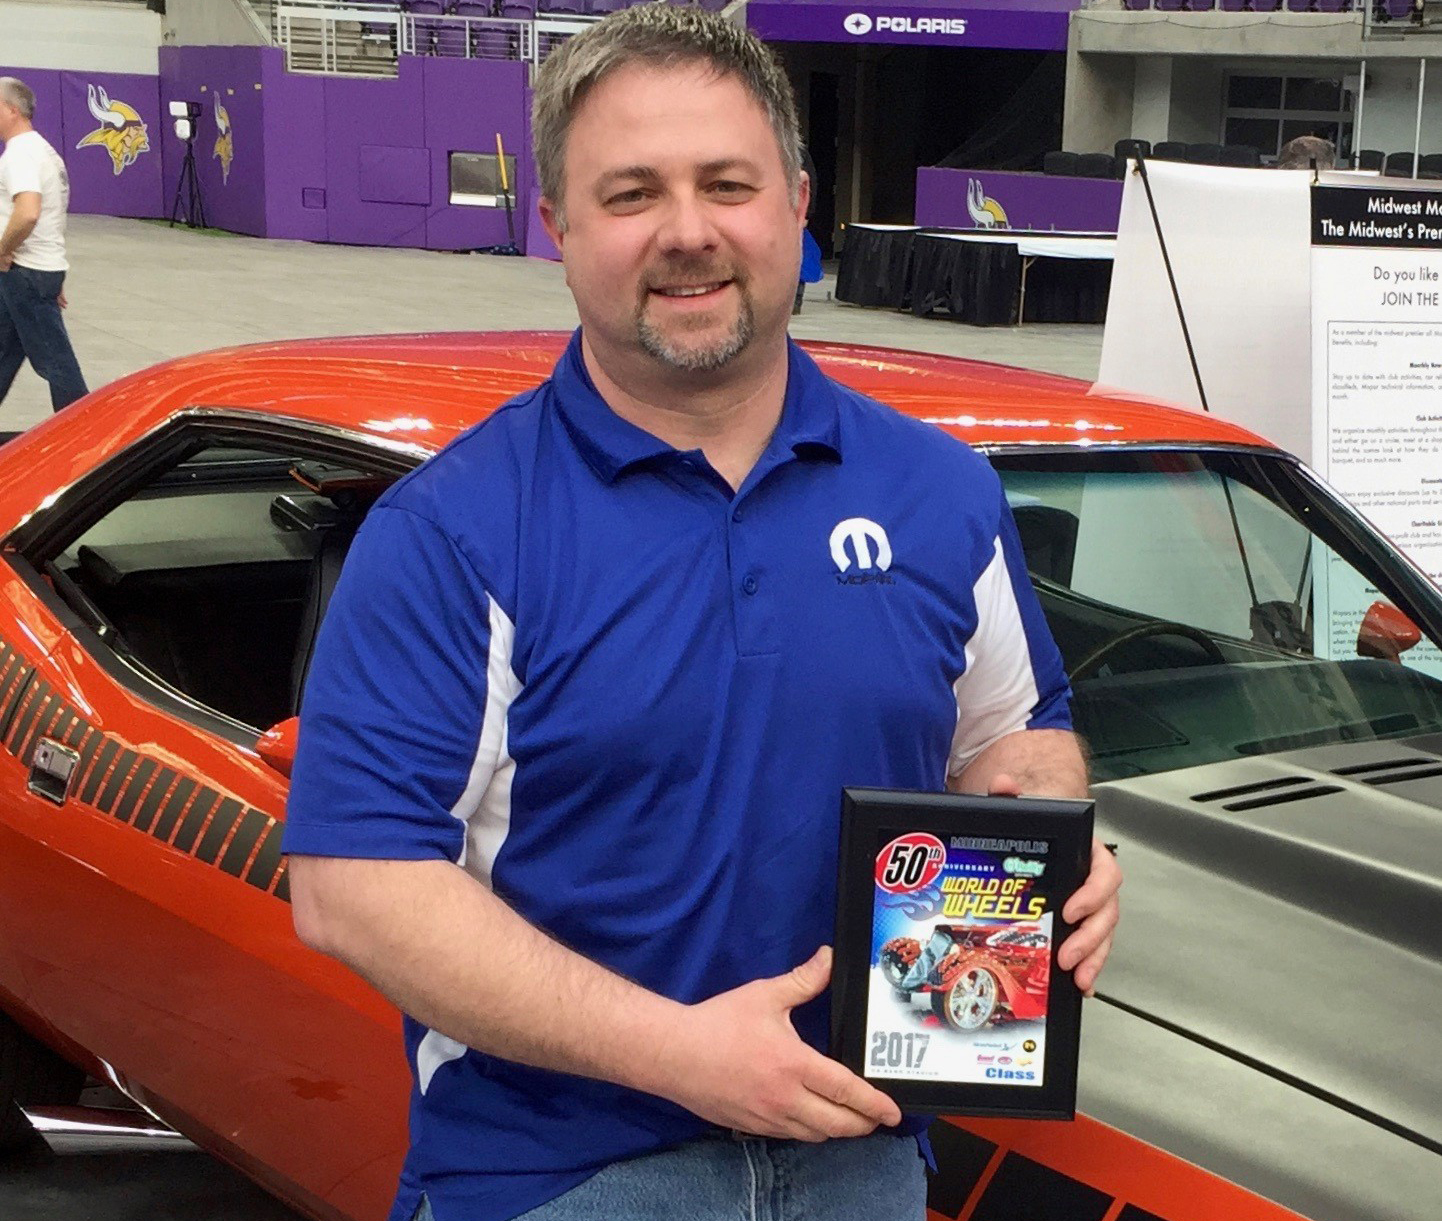 Jake Mayne poses with an award he won for his 1970 Plymouth AAR Cuda.